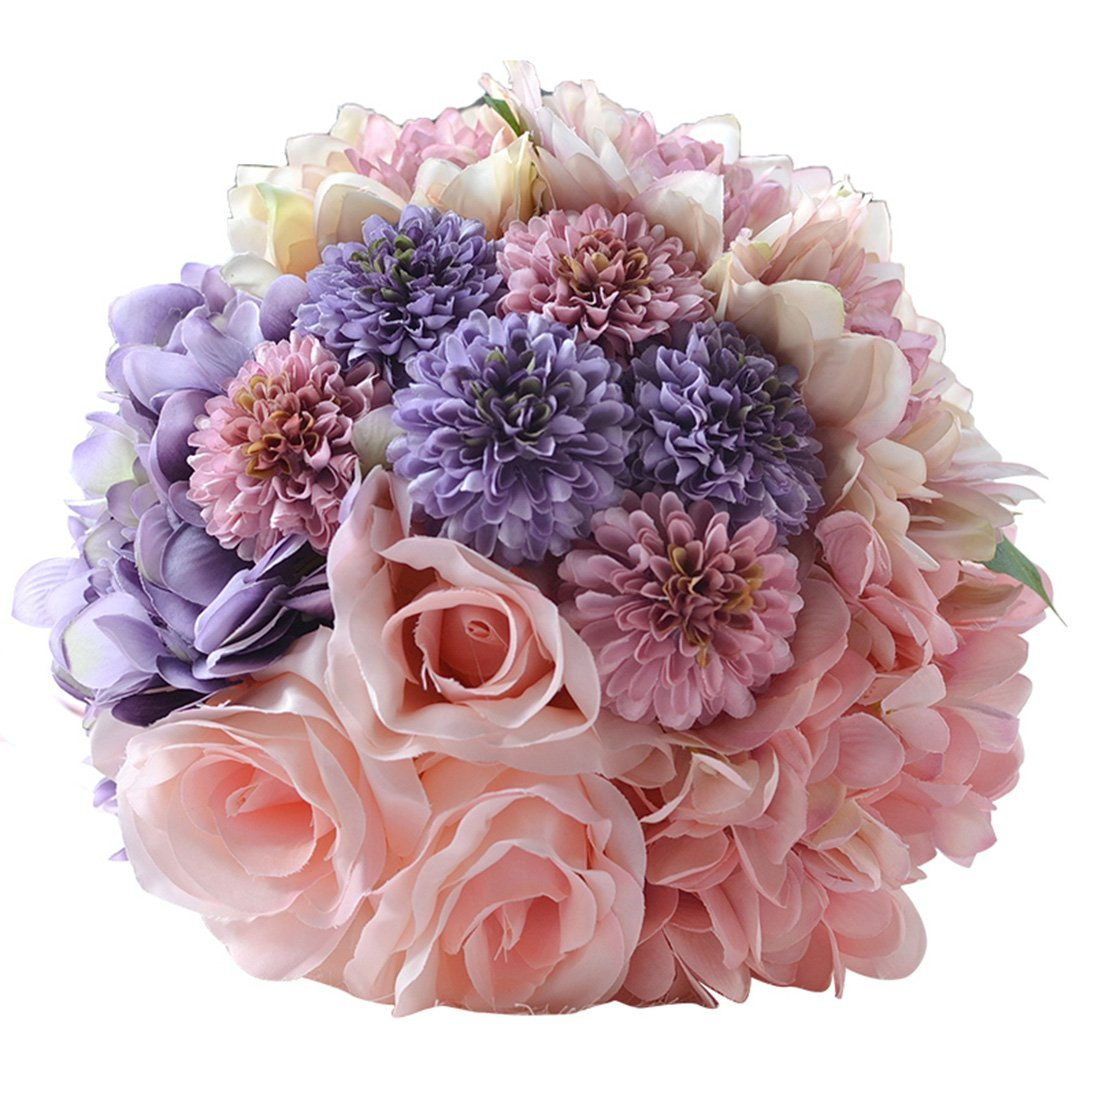 Cheap artificial silk flowers wedding bouquets find artificial silk get quotations snowskite bridal bridesmaid bouquets artificial pink rose silk flowers bouquet home wedding decoration pink izmirmasajfo